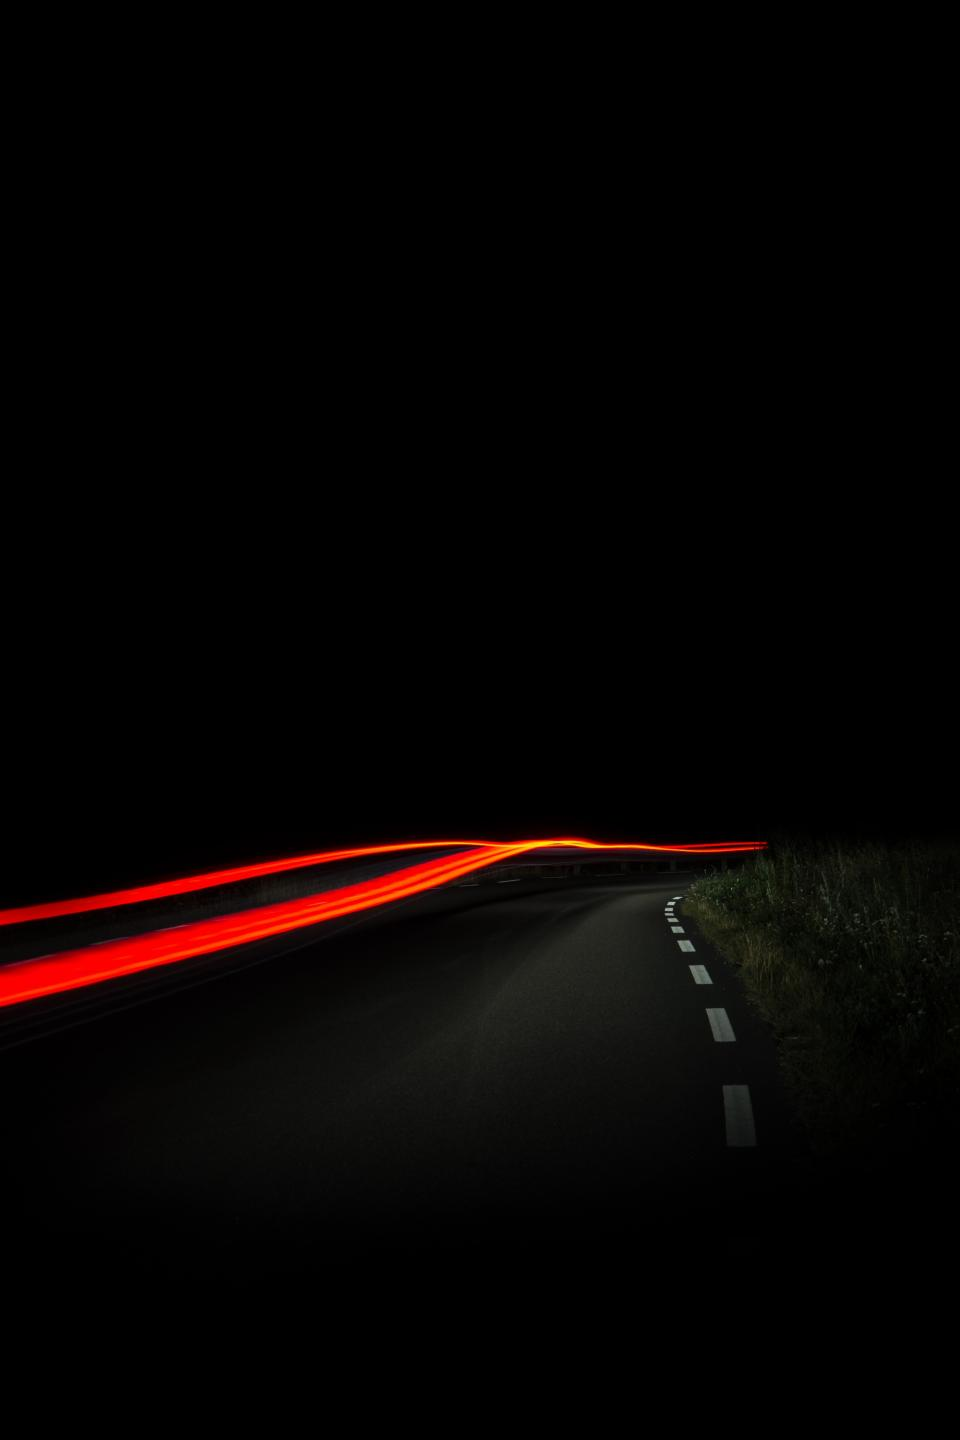 long exposure car transportation photography dark night road highway